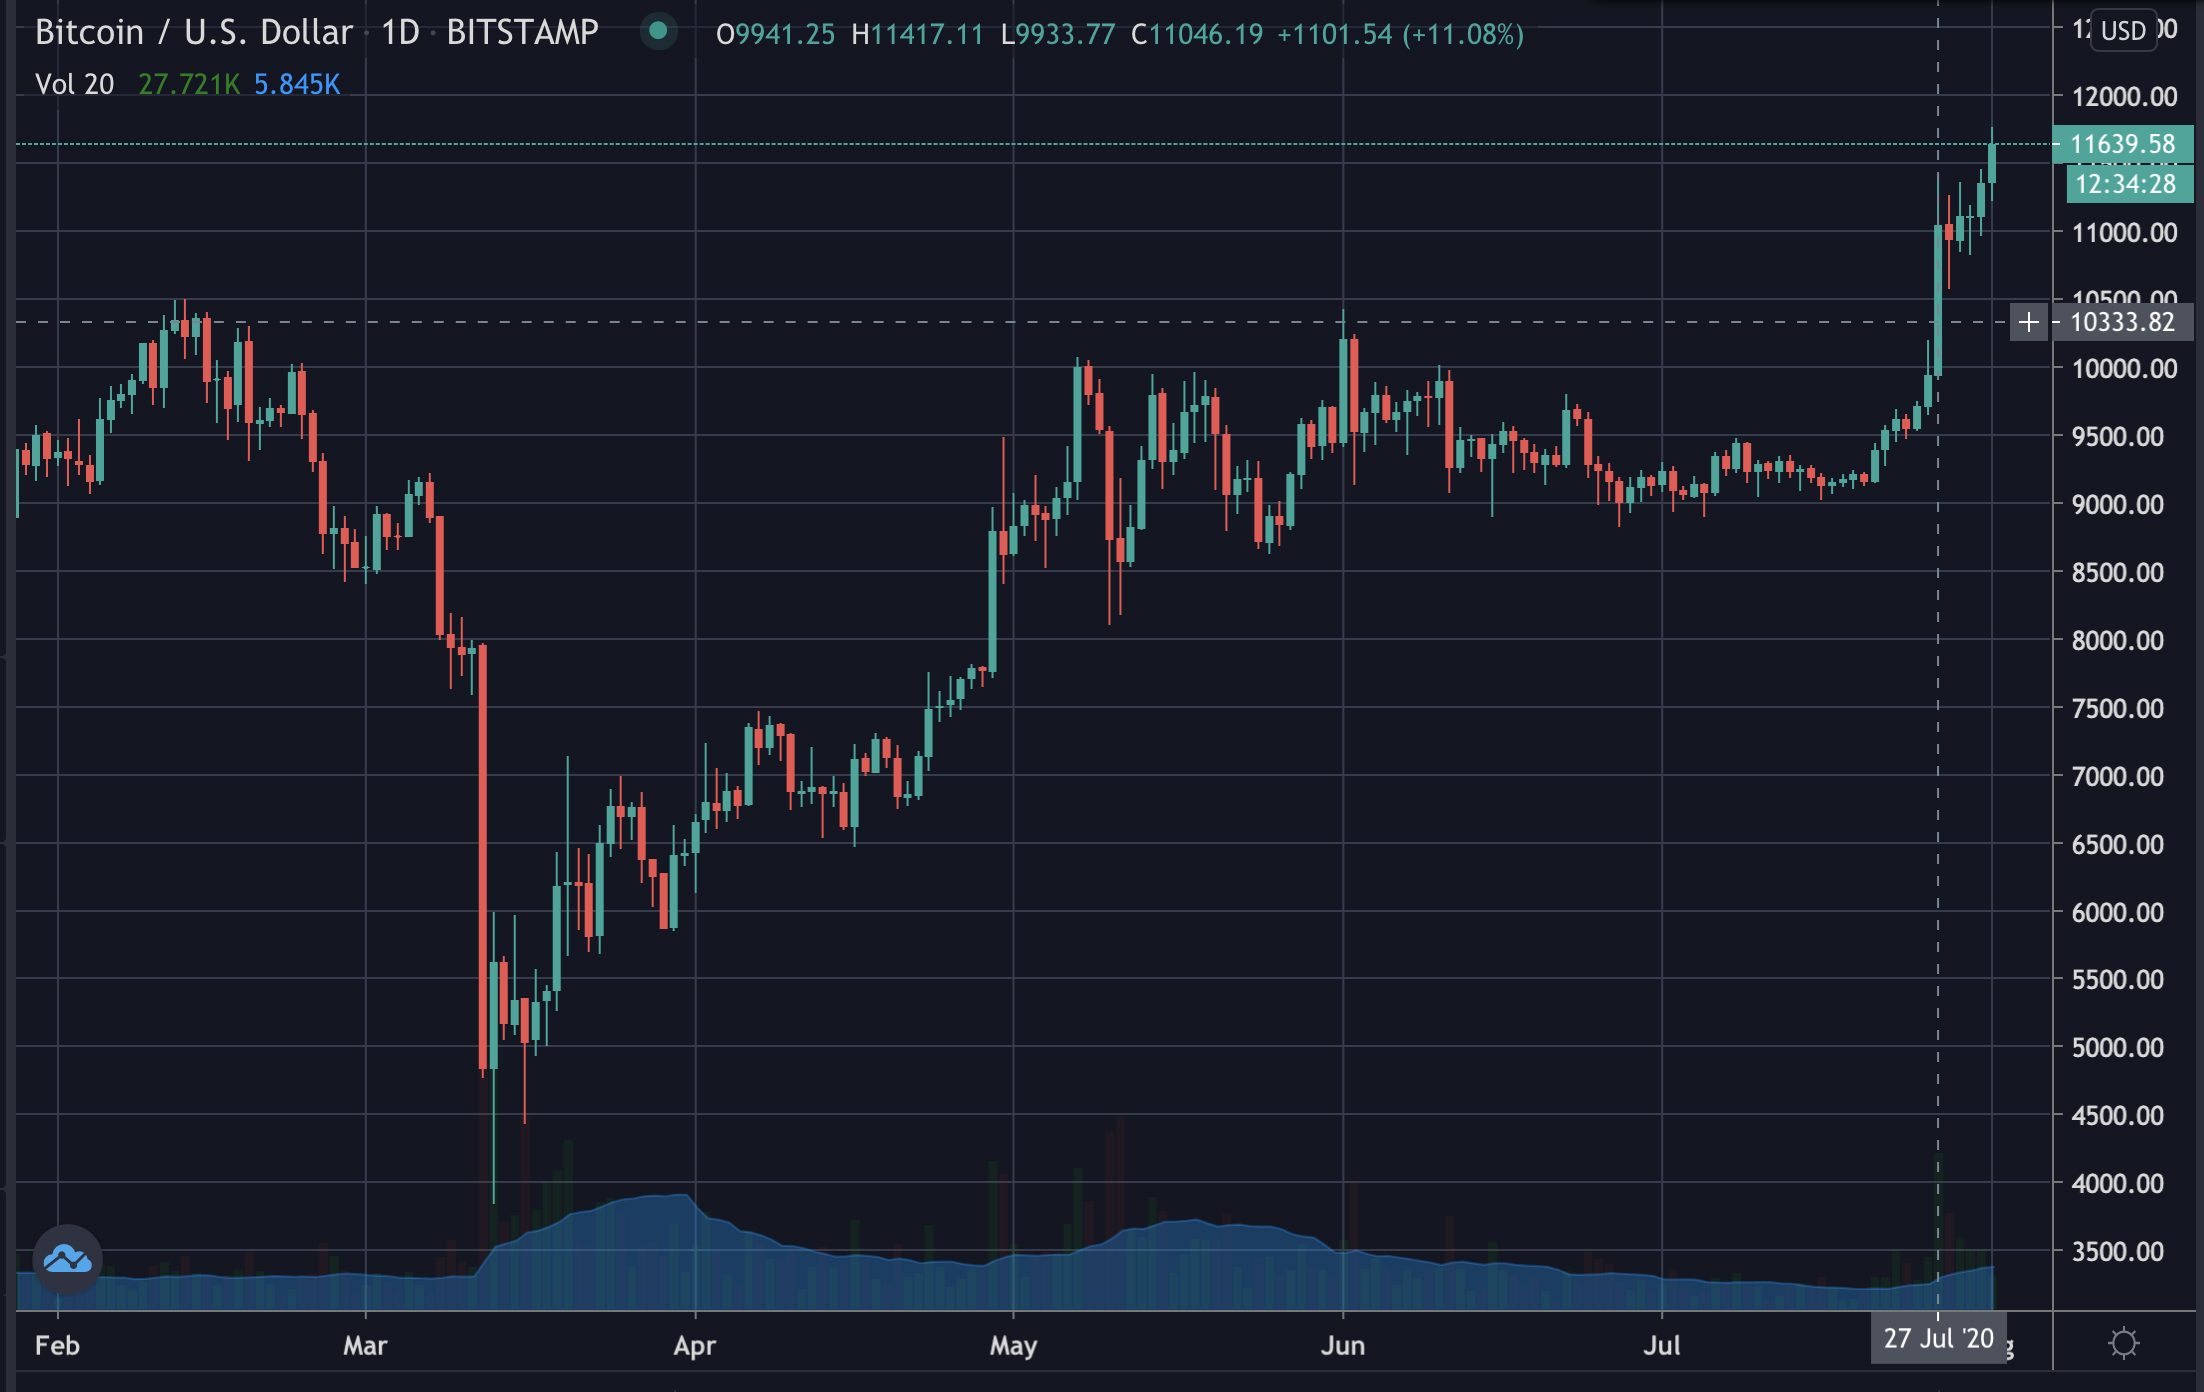 Bitcoin's price, July 2020